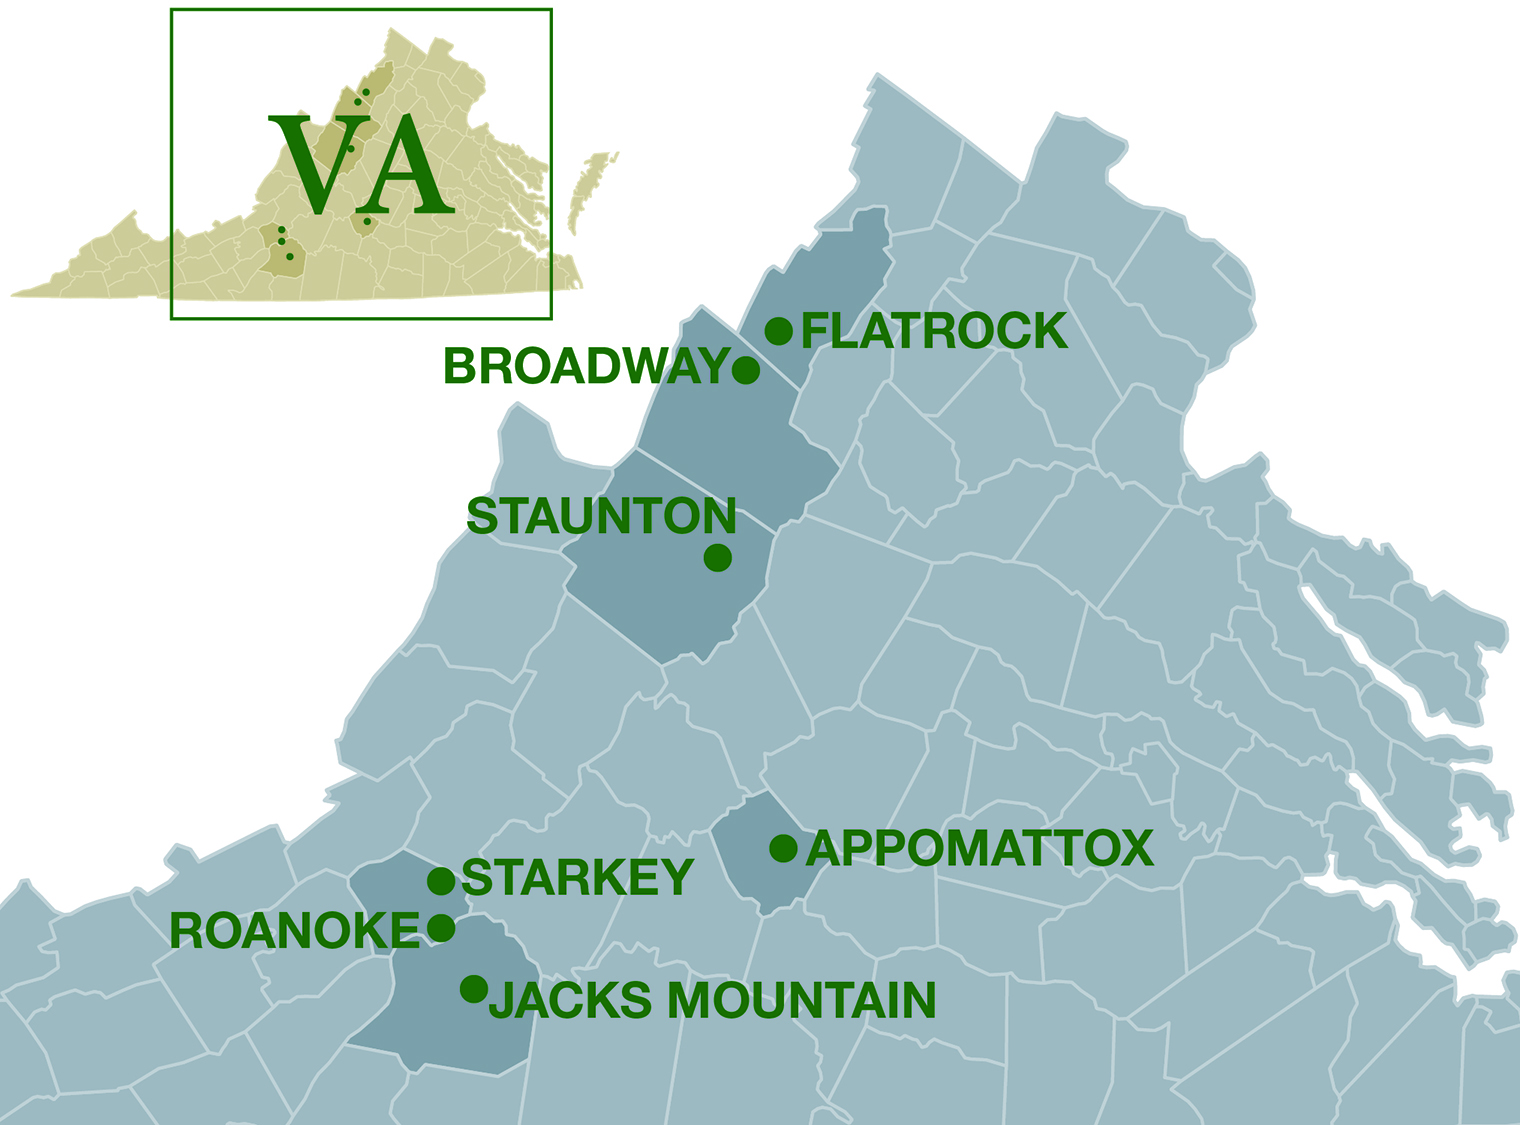 Quarrie Locations, VA